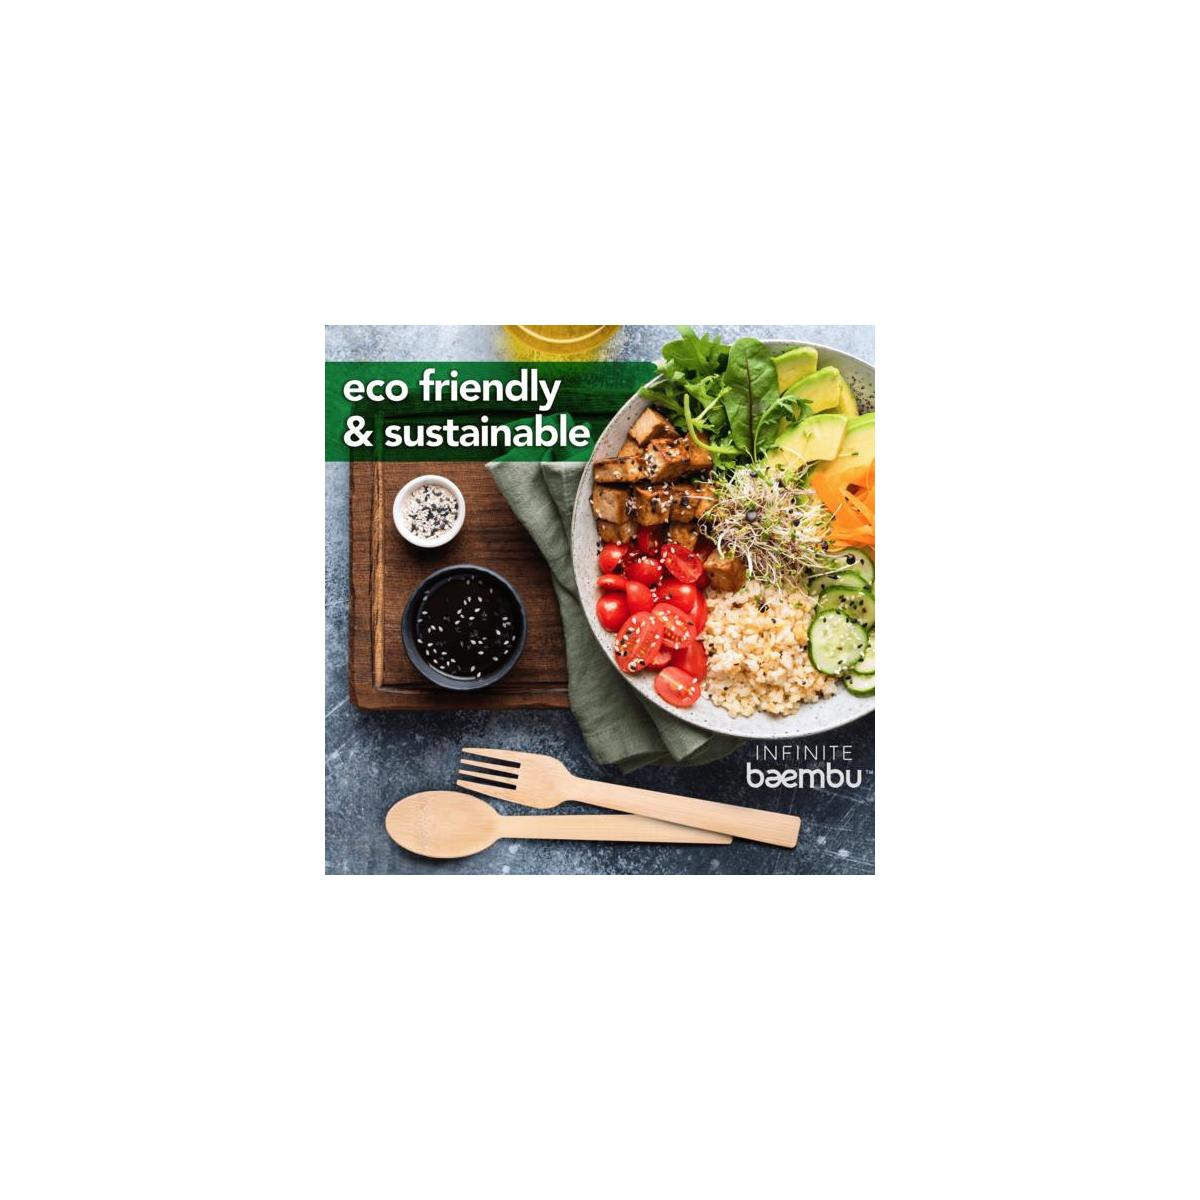 100% Bamboo Disposable Cutlery Set - Superior to Wooden Cutlery | Eco Friendly, Compostable, Biodegradable Bamboo Utensils; Perfect For All & Any Occasions; 100PK (50 Forks, 25 Spoons, 25 Knives)